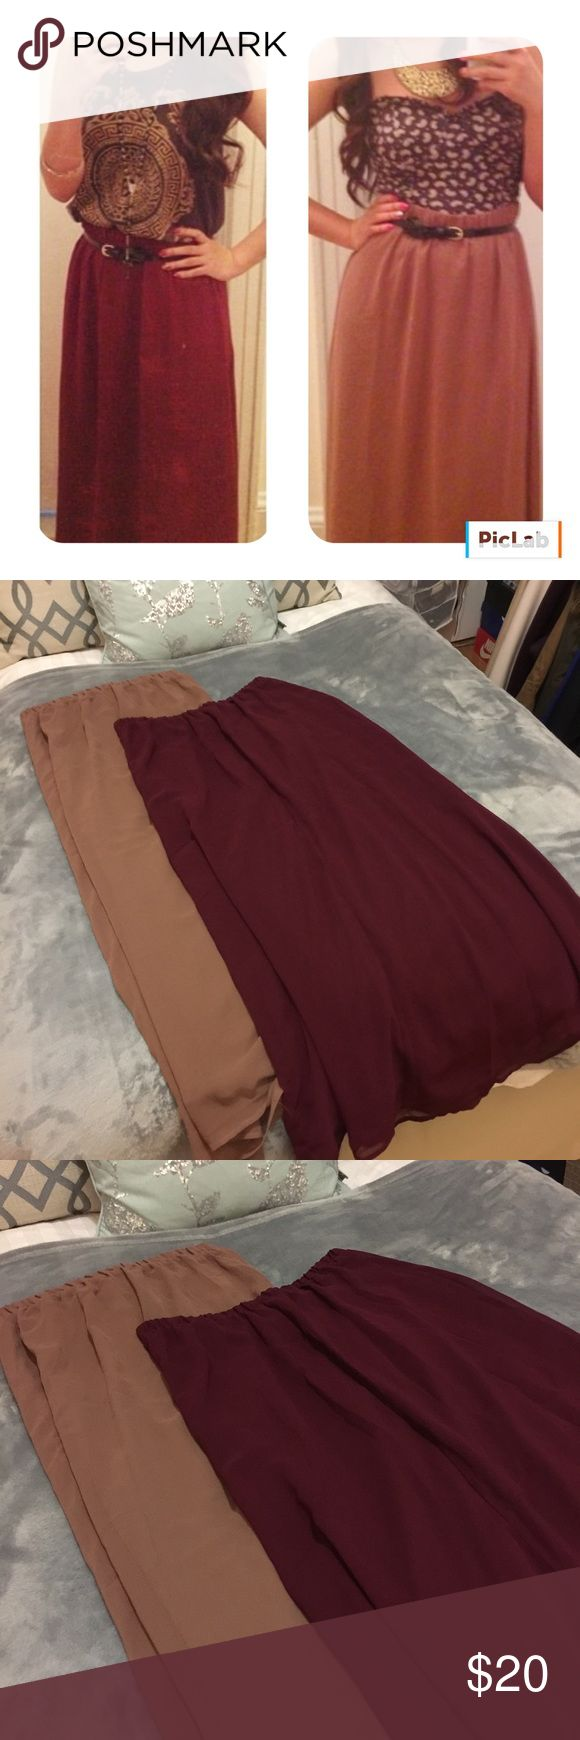 Maxi skirt bundle 2 in a price of one. Maxi skirt 1 - burgundy Maxi skirt  2 - Dusty Rose. Barely worn Forever 21 Skirts Maxi